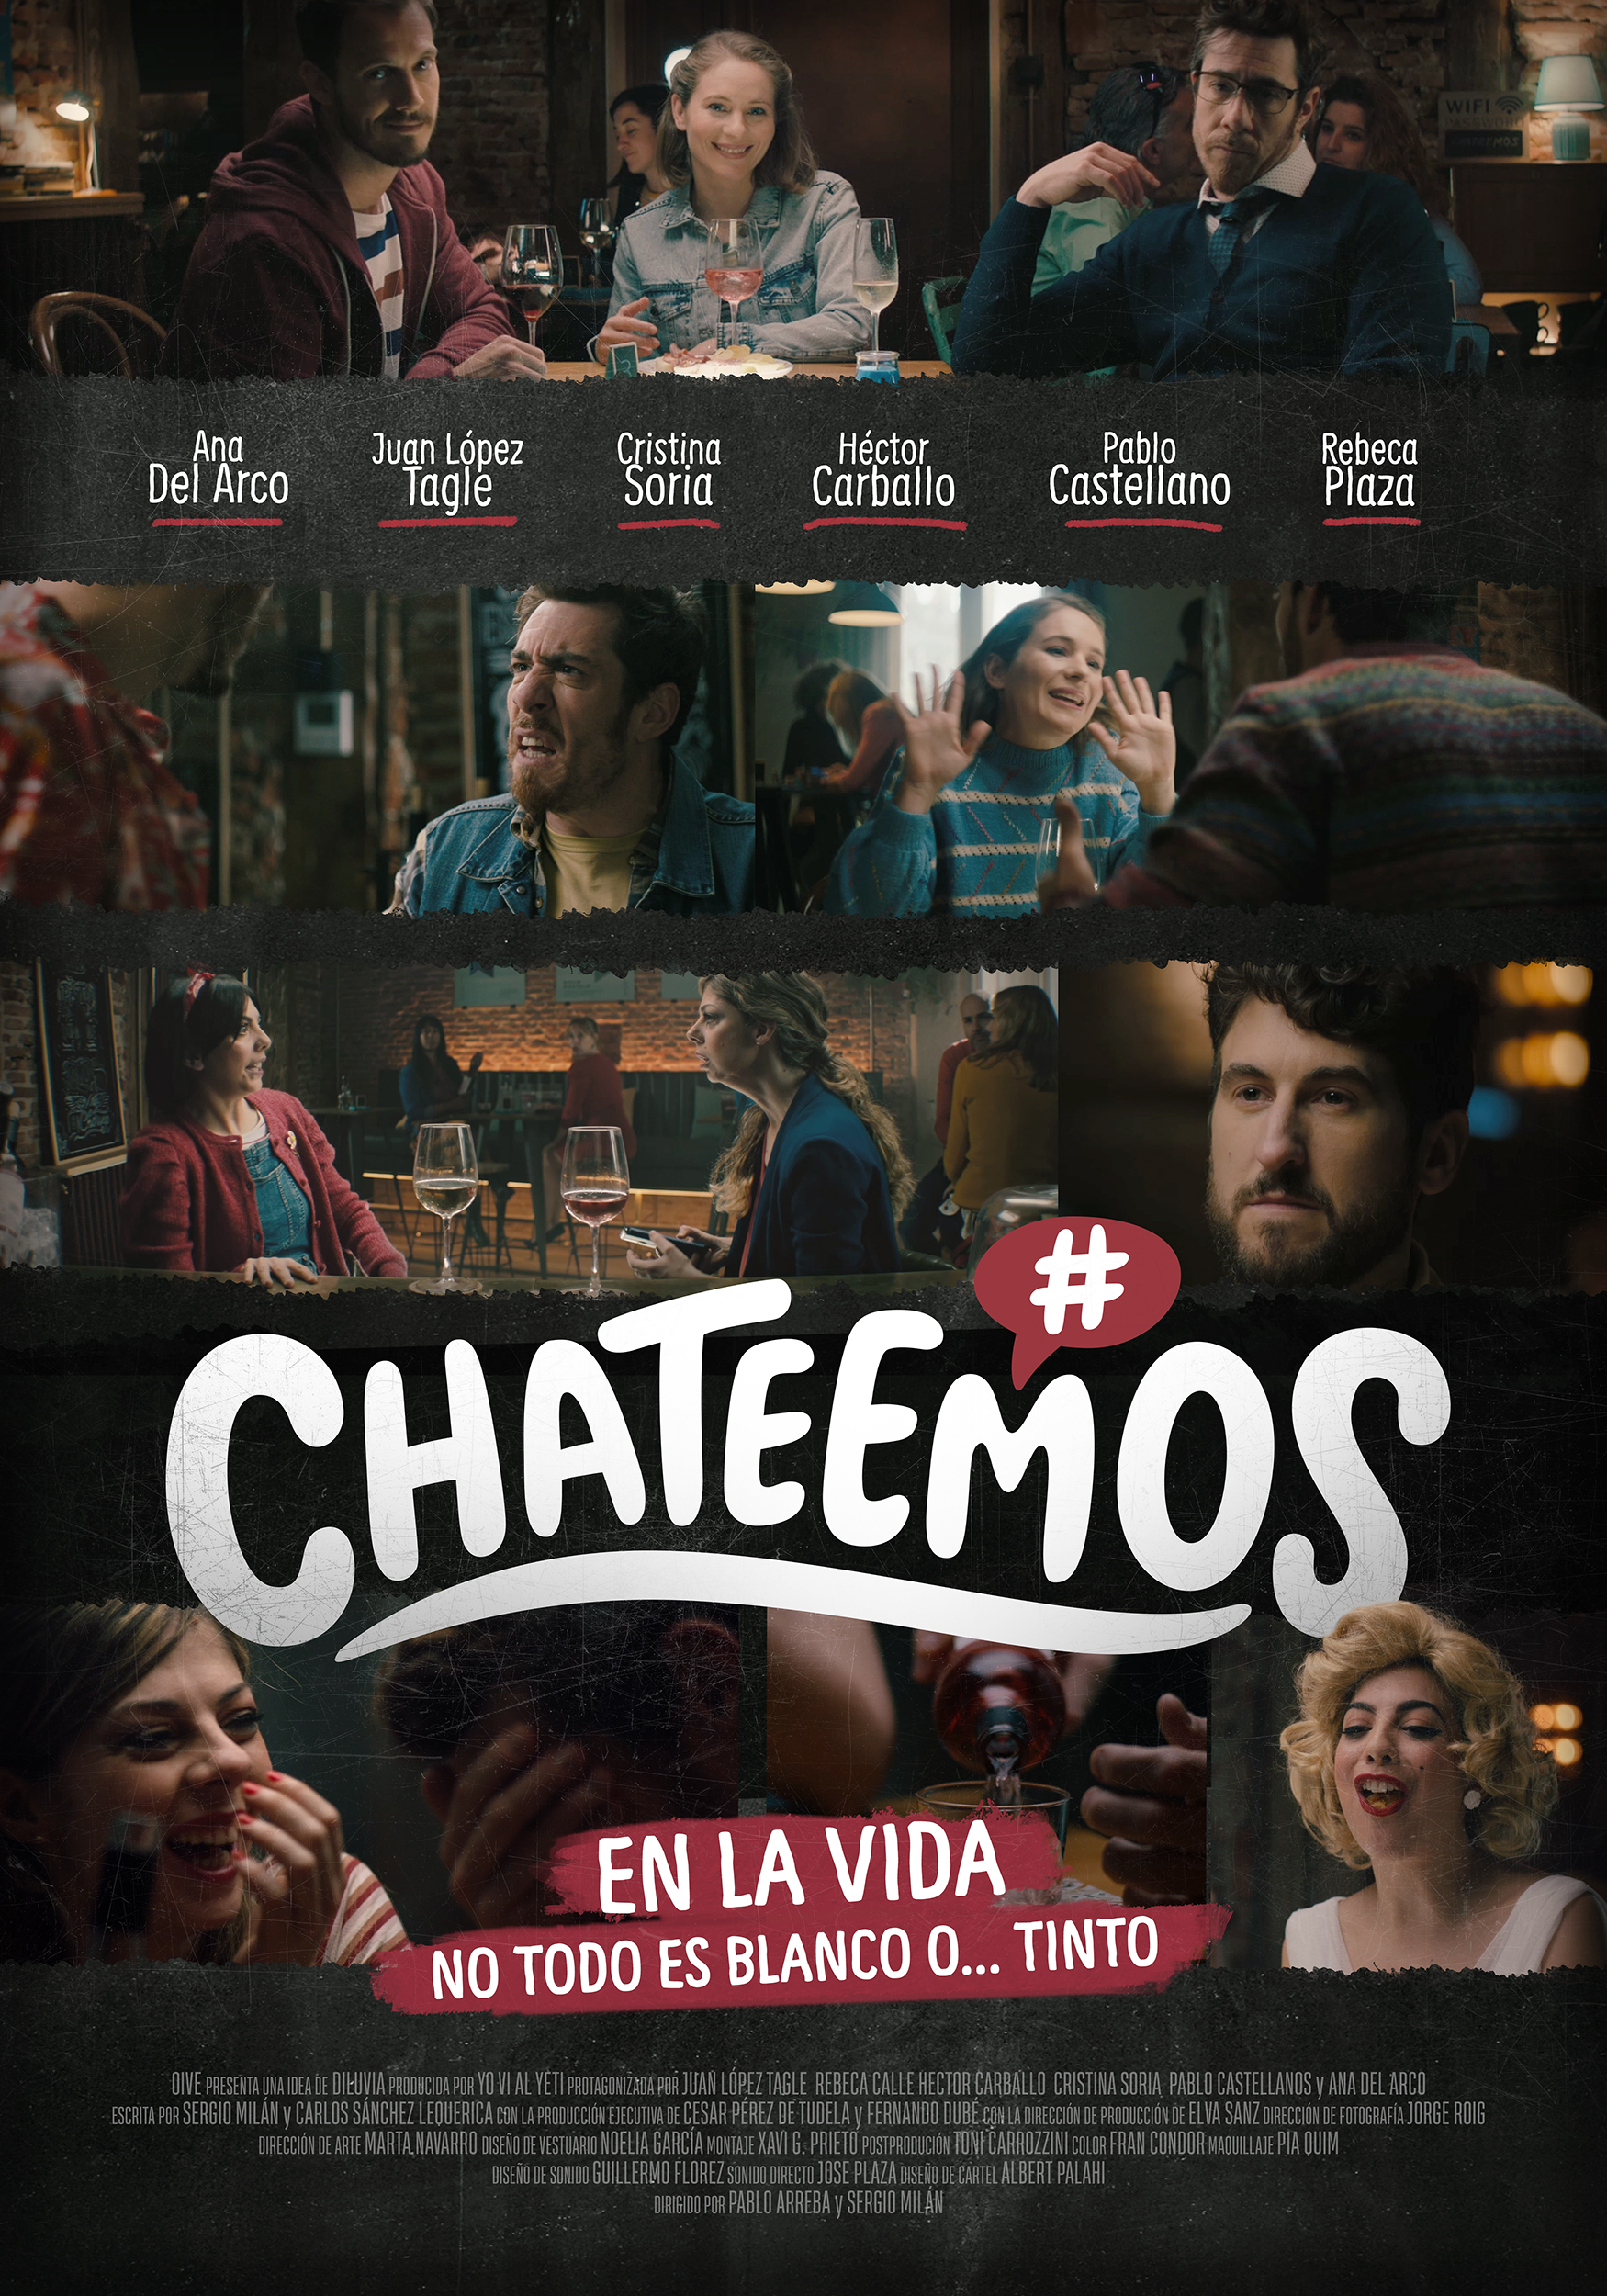 Chateemos_Cartel_2_LowRes-1